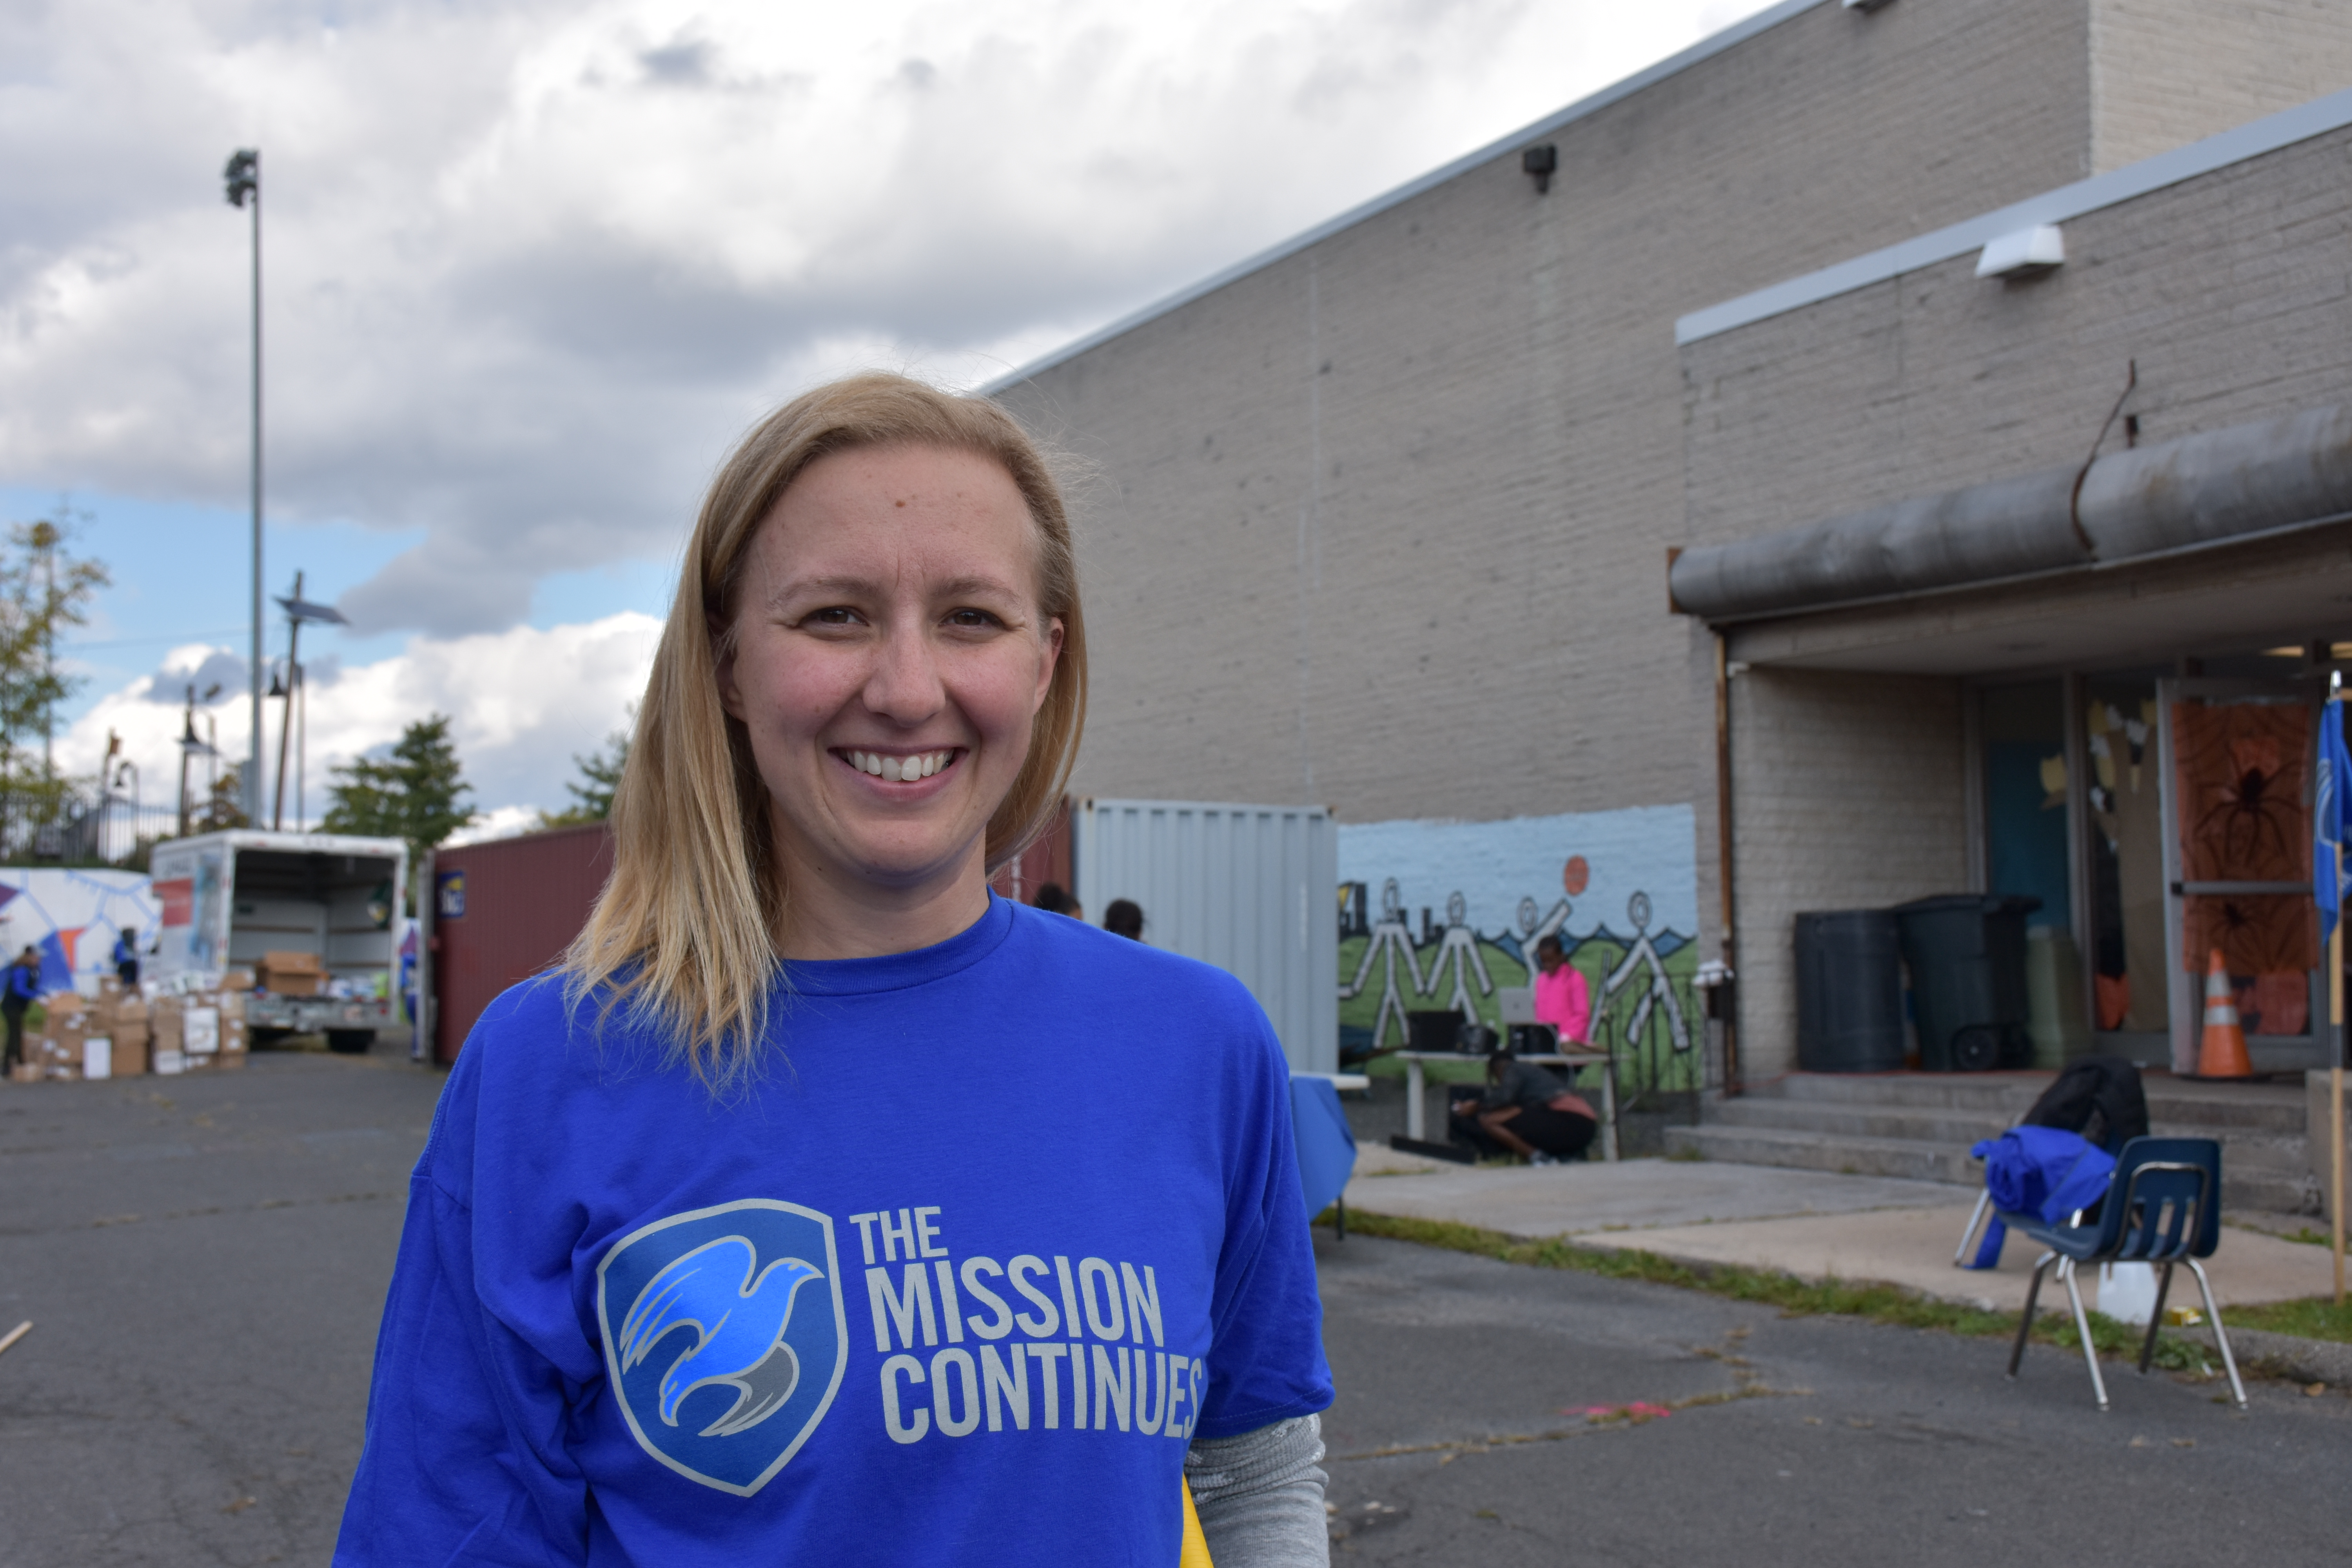 An Interview with Service Leadership Corps Member Allison Sage